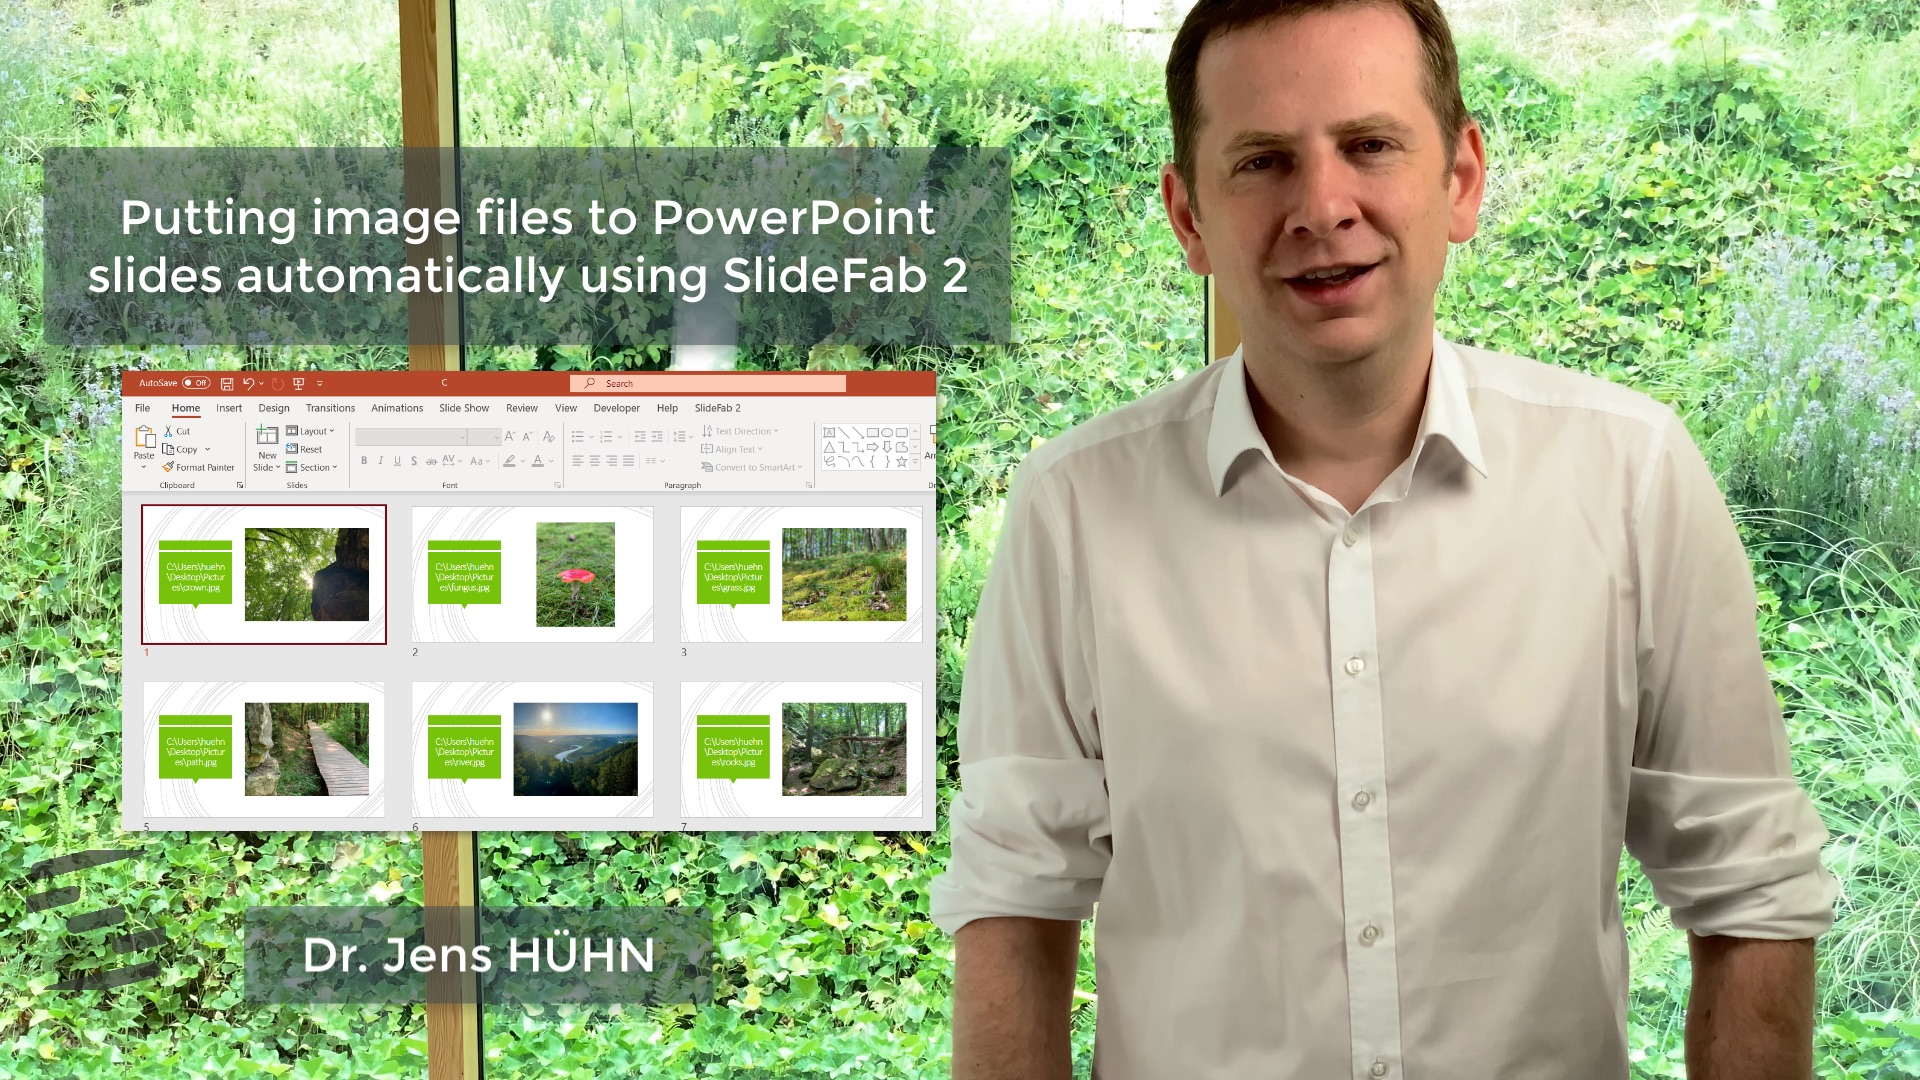 This is a still picture from the video explaining how to put image files onto PowerPoint slides with SlideFab 2 automatically